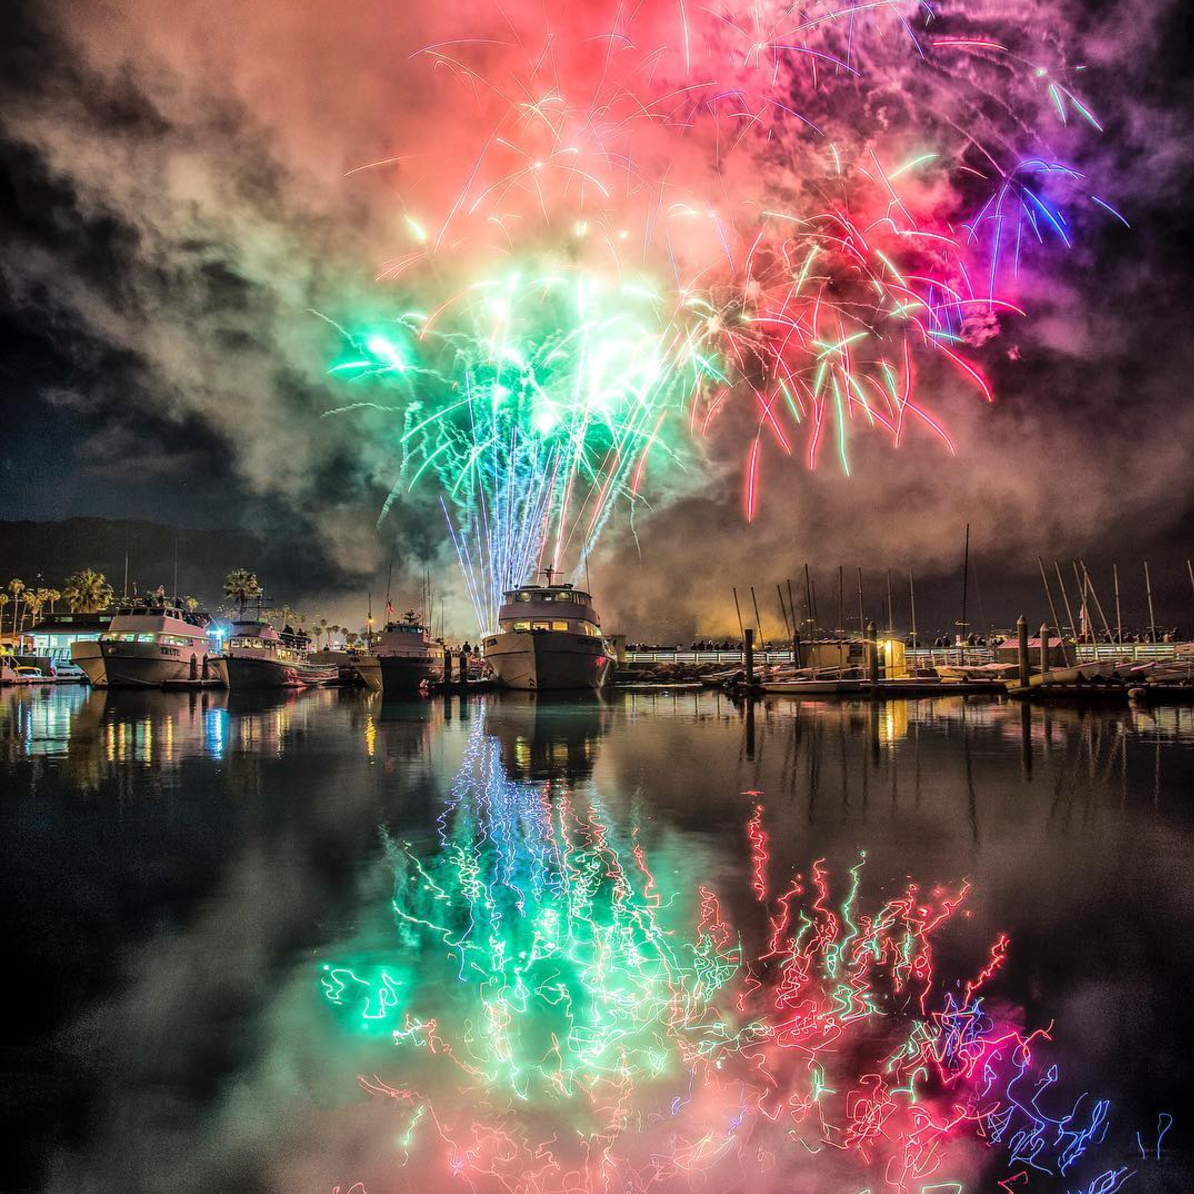 Stunning colors from the beautiful fireworks display at the Santa Barbara Harbor |  Image by:  SBFourth